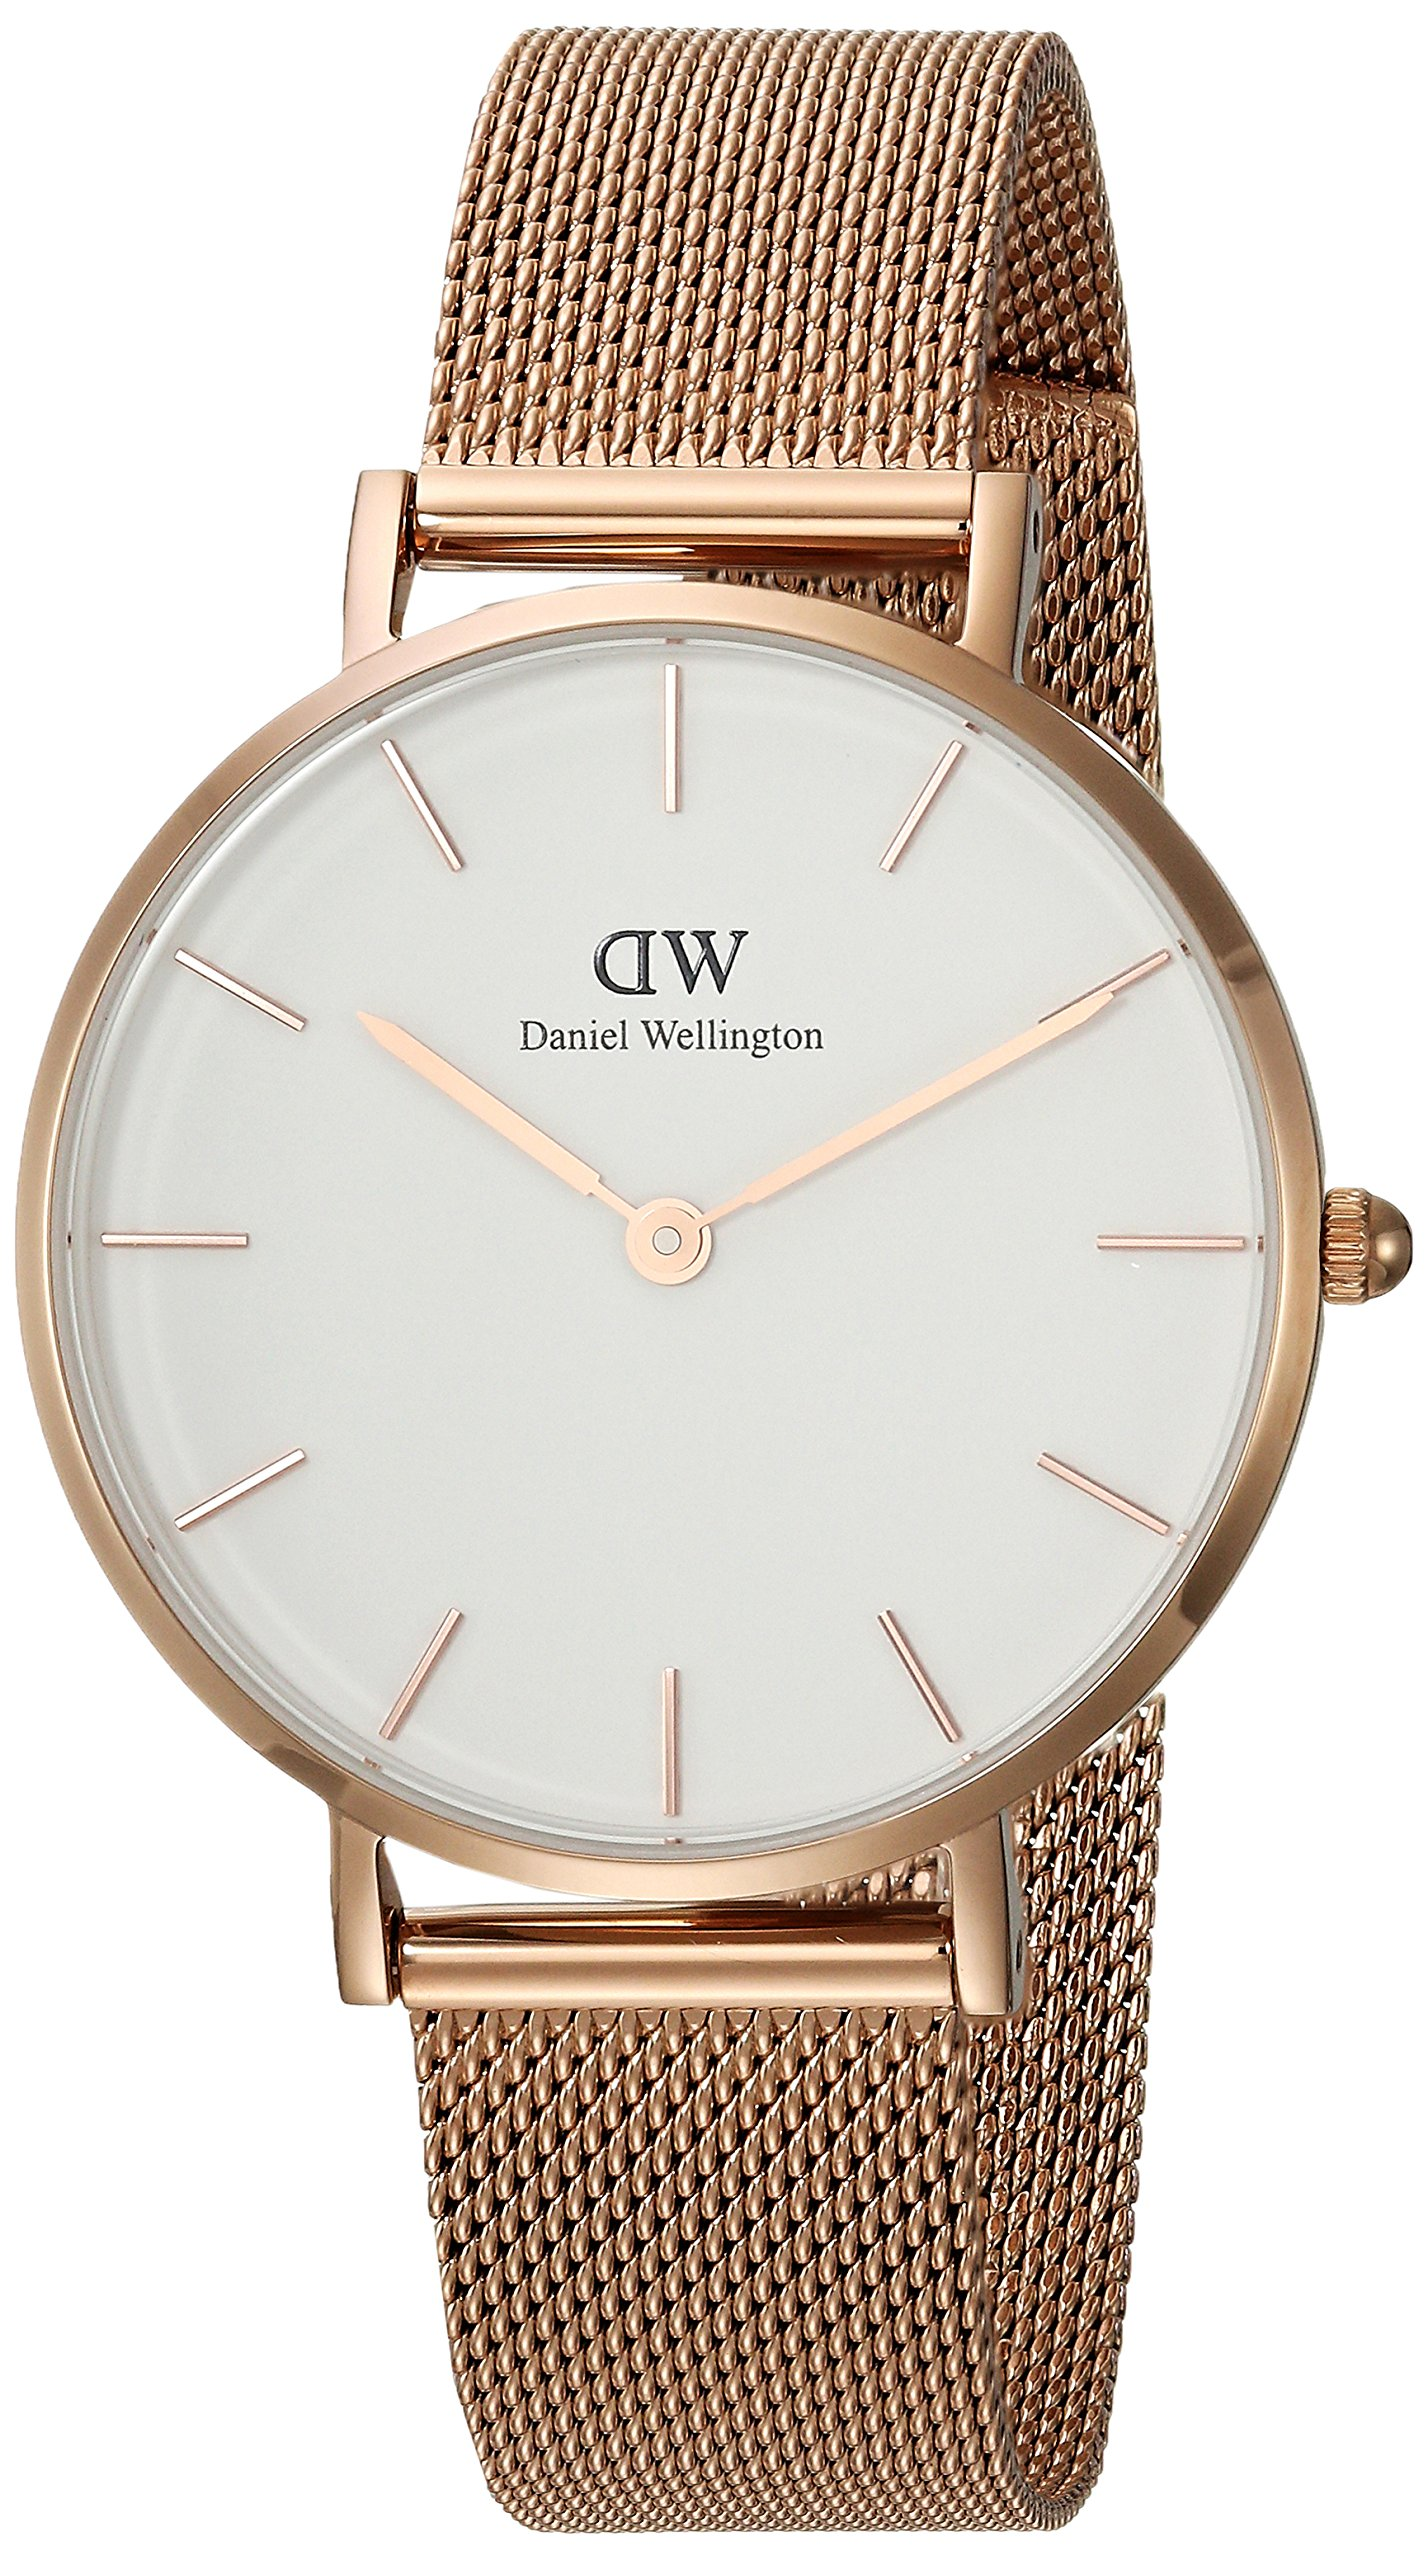 Daniel Wellington Gift Set, Classic Petite Melrose 32mm Watch with Rose Gold Classic Cuff, Color:Rose Gold-Toned (Model: DW00500003)